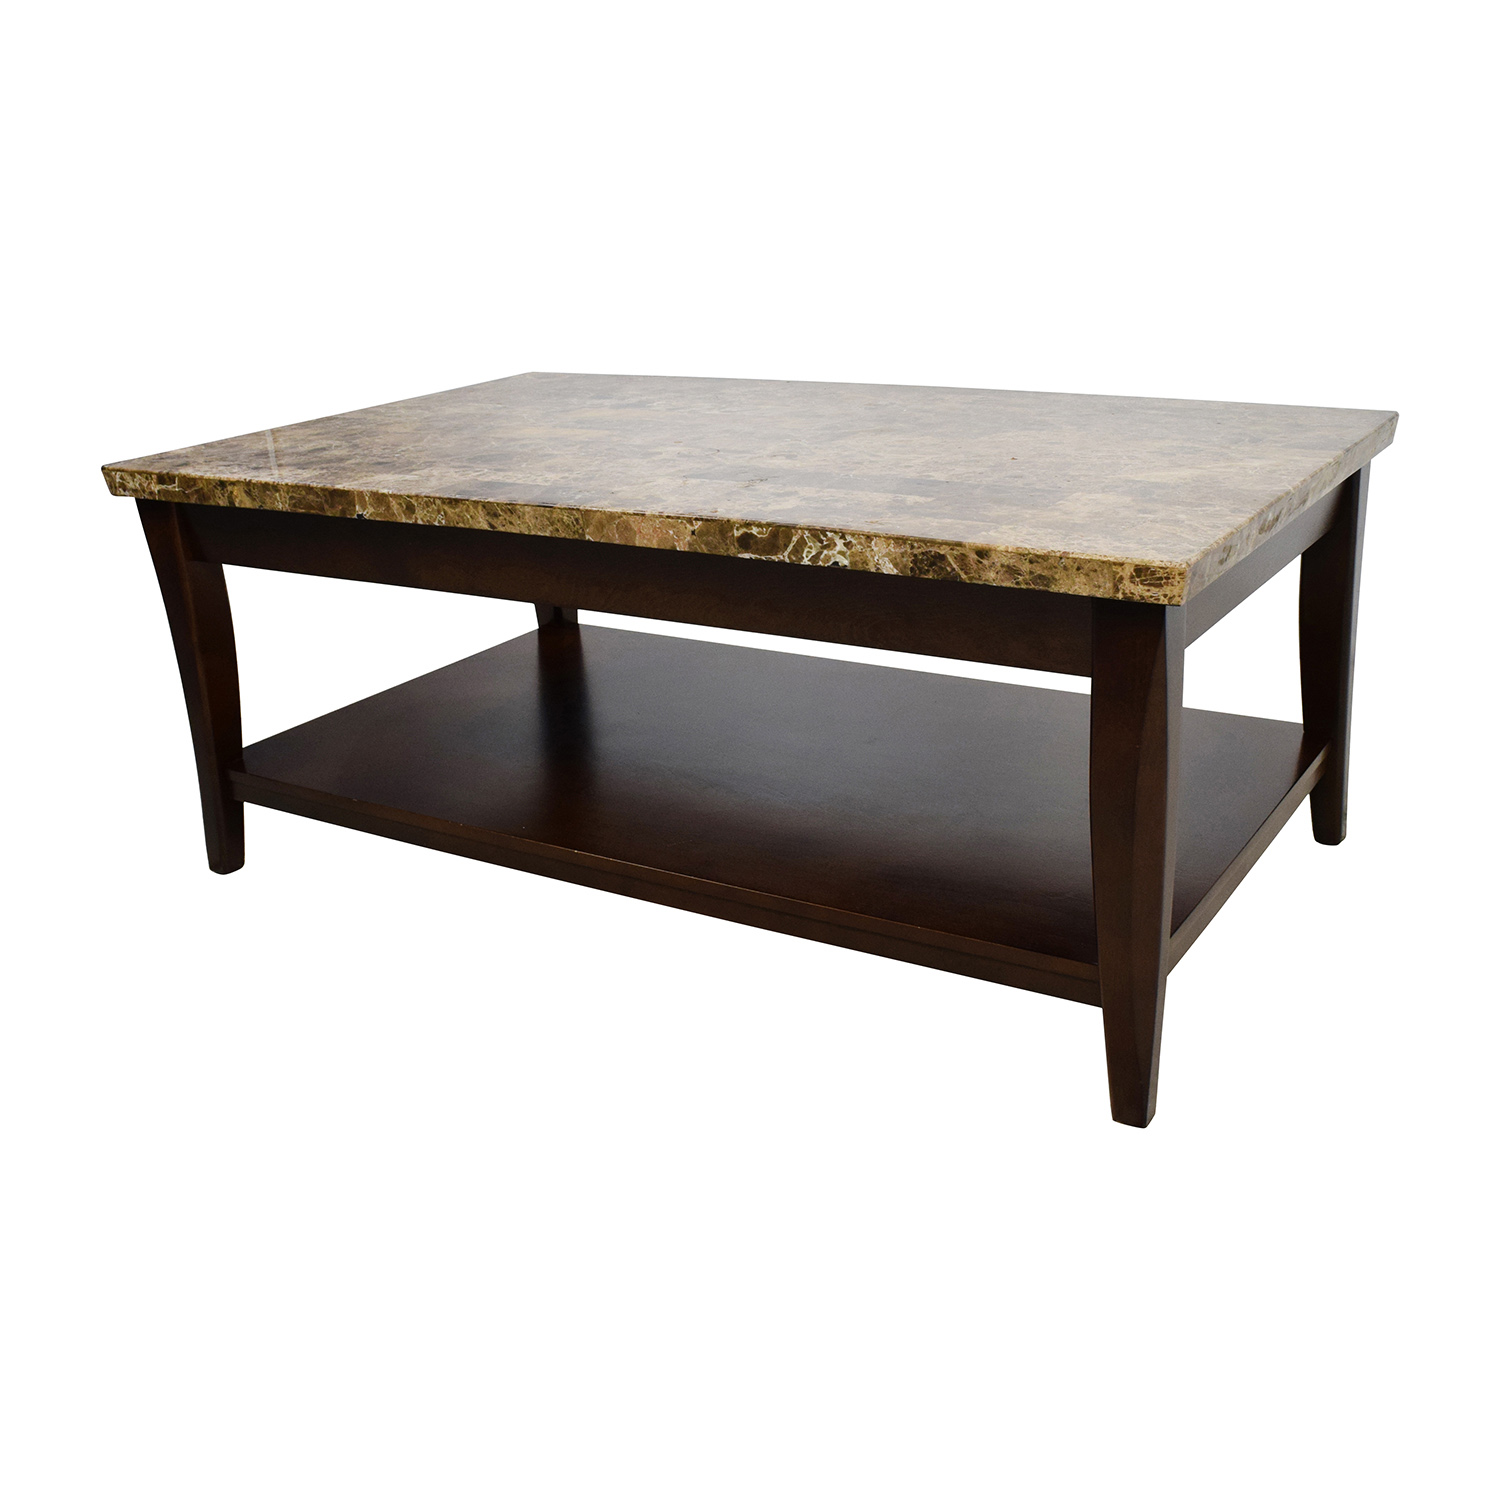 71 off marble and wood coffee table tables Tables for coffee shop